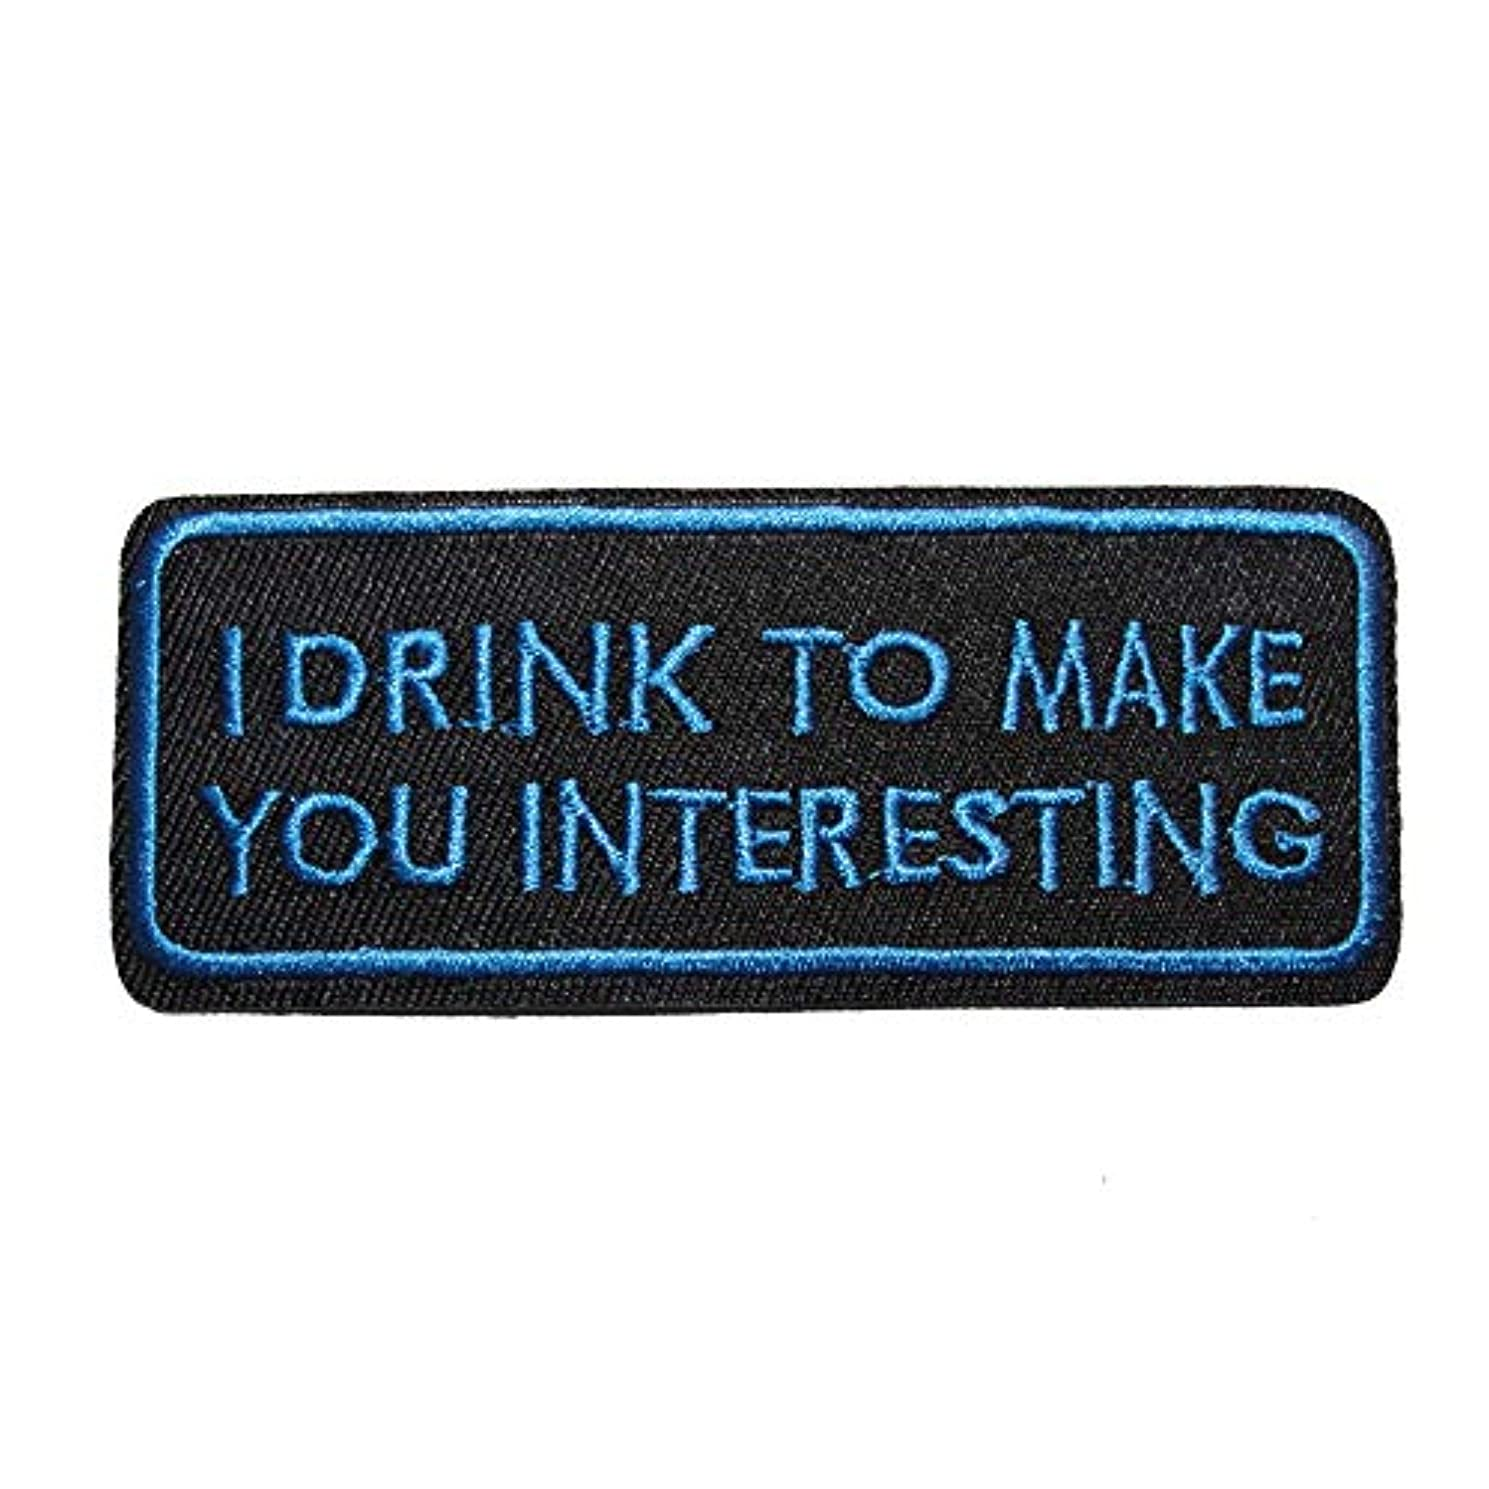 U-Sky Sew or Iron on Patches - I Drink to Make You Interesting Patch